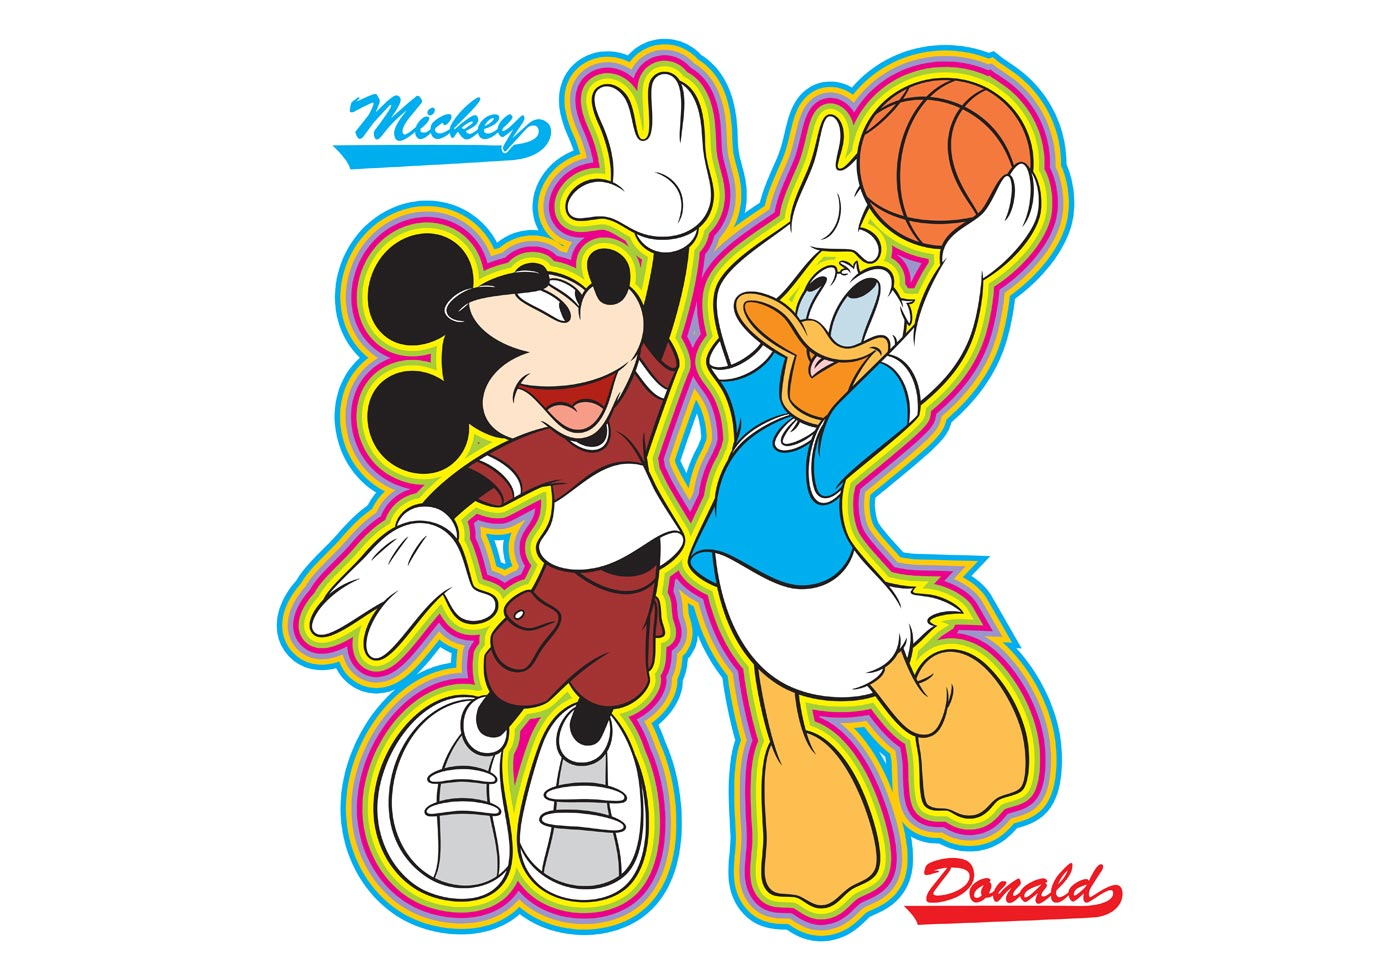 mickey and donald basketball - Download Free Vector Art ...